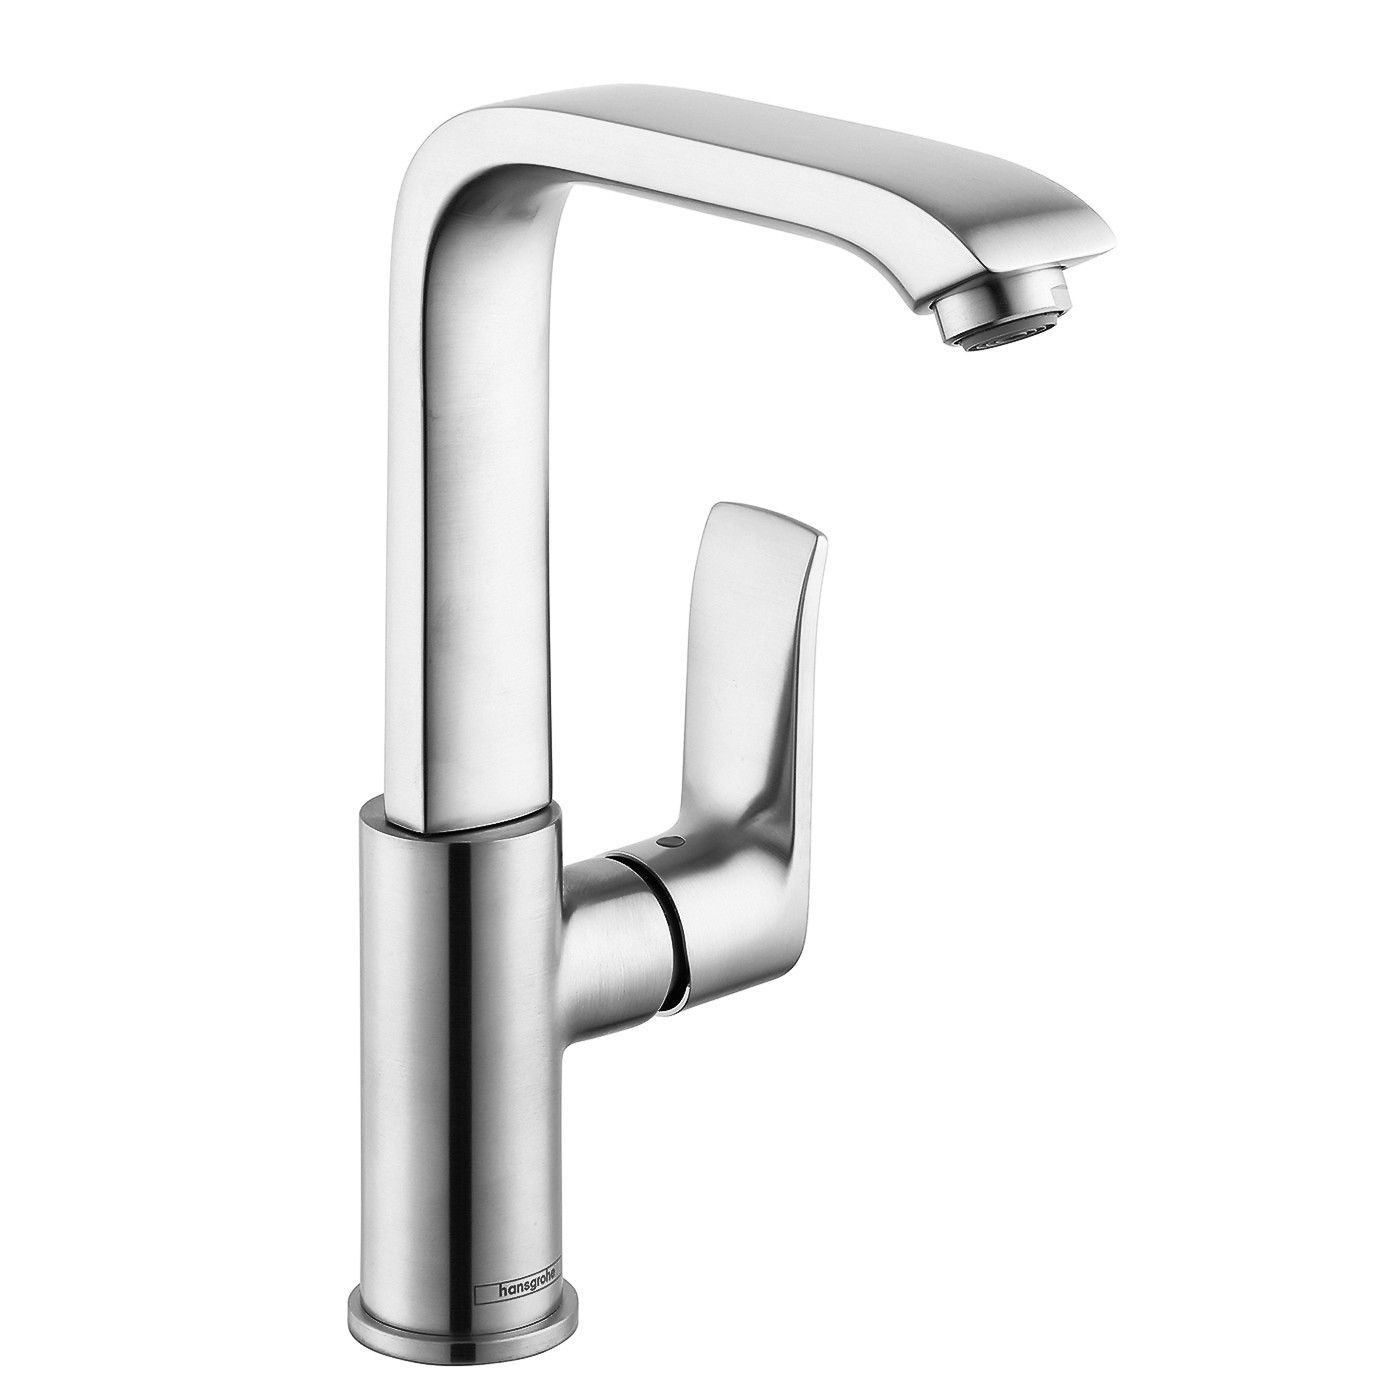 Hansgrohe 31087001 Chrome Metris Bathroom Faucet Single Hole Faucet ...